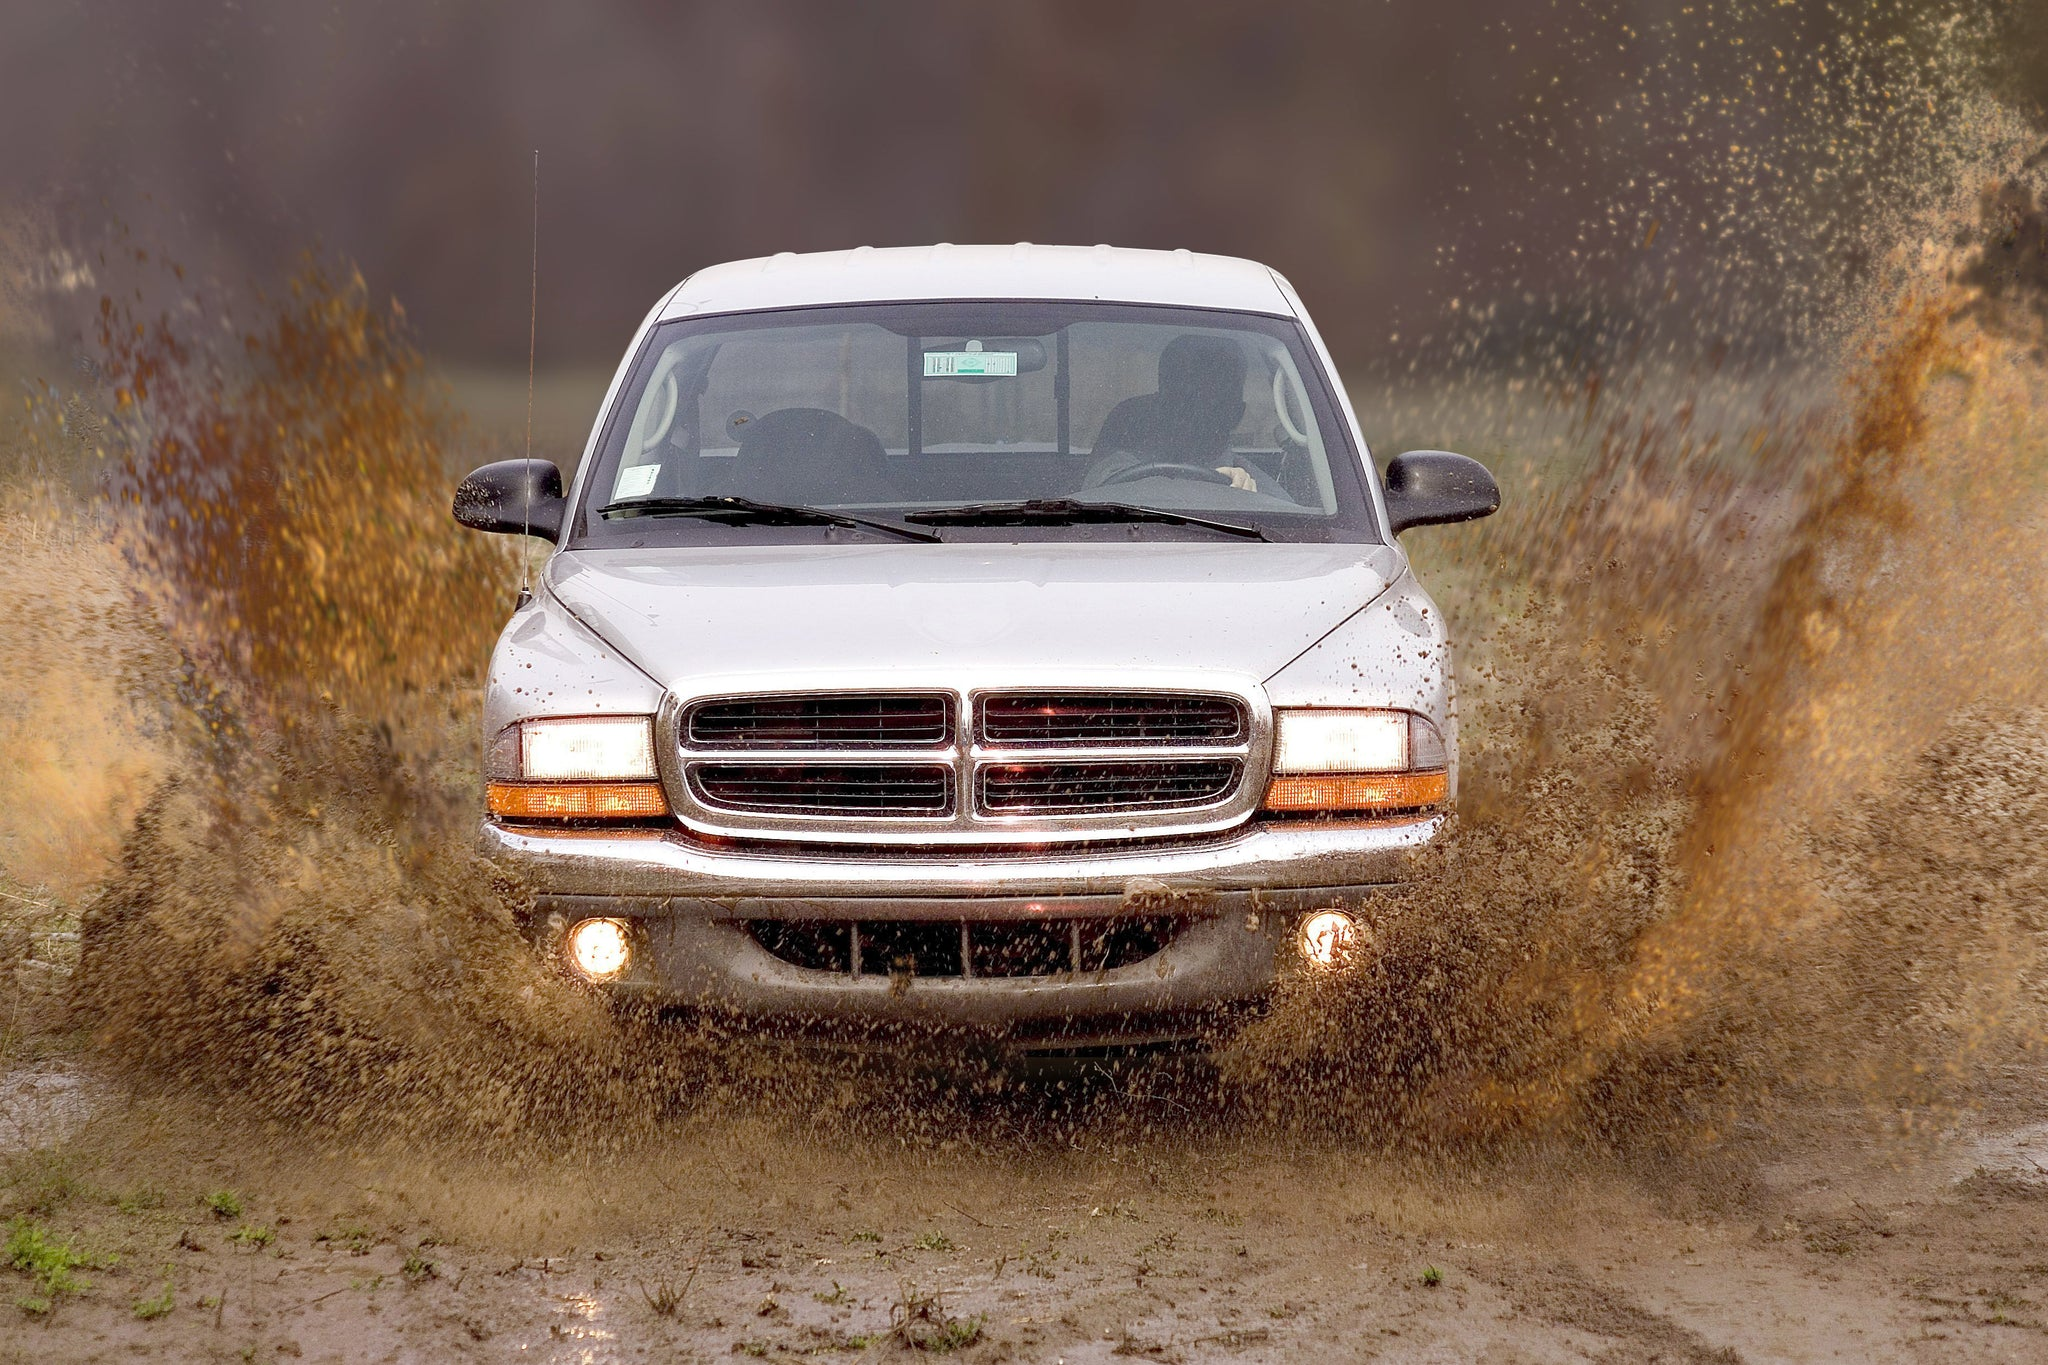 4 Tips For Cleaning Up After Going Mudding